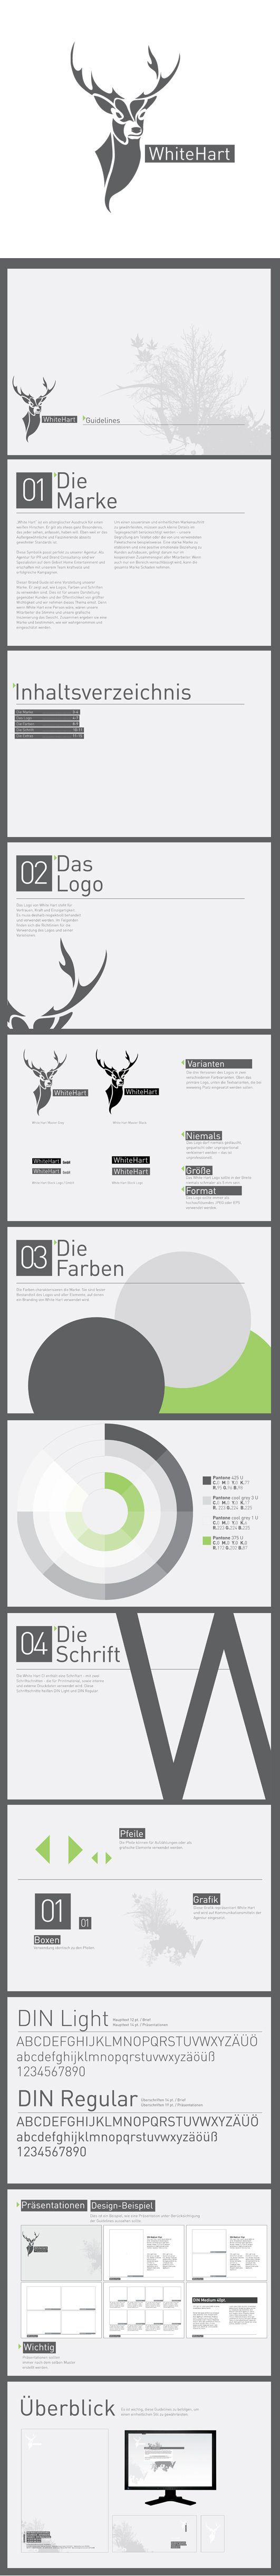 Identity use guidelines | Designer: Popular Group